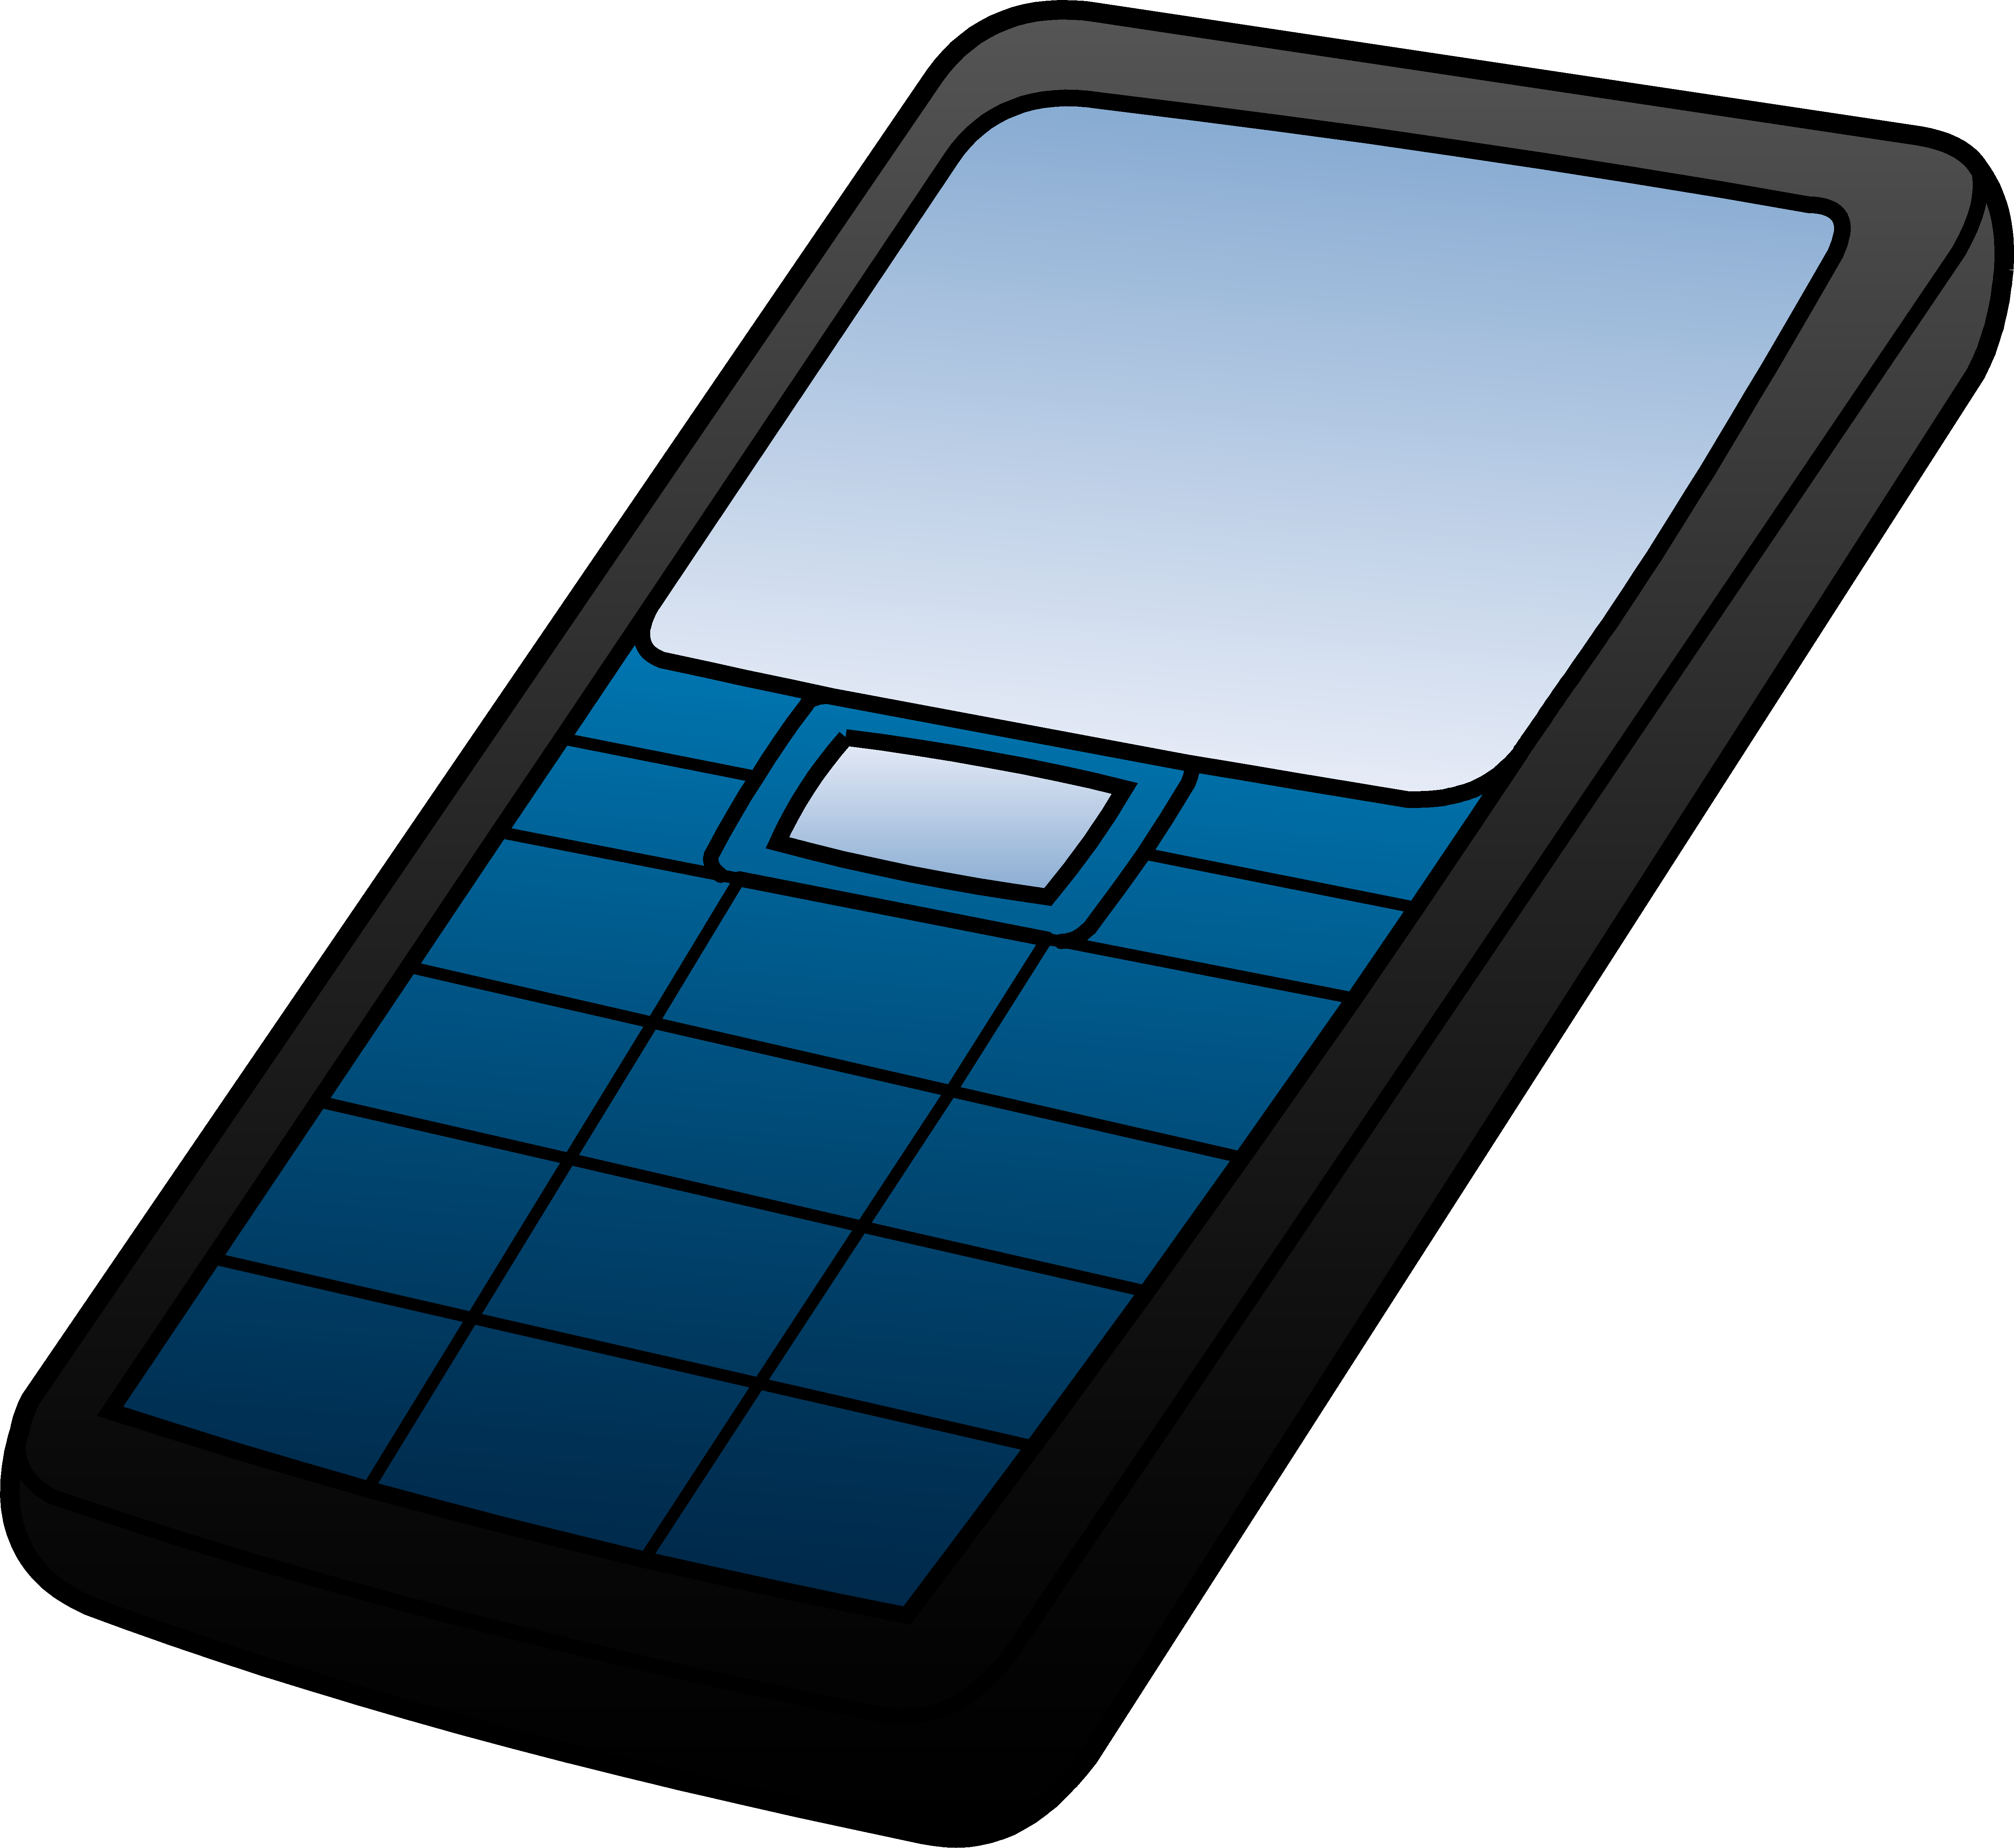 cell phone ringing clipart